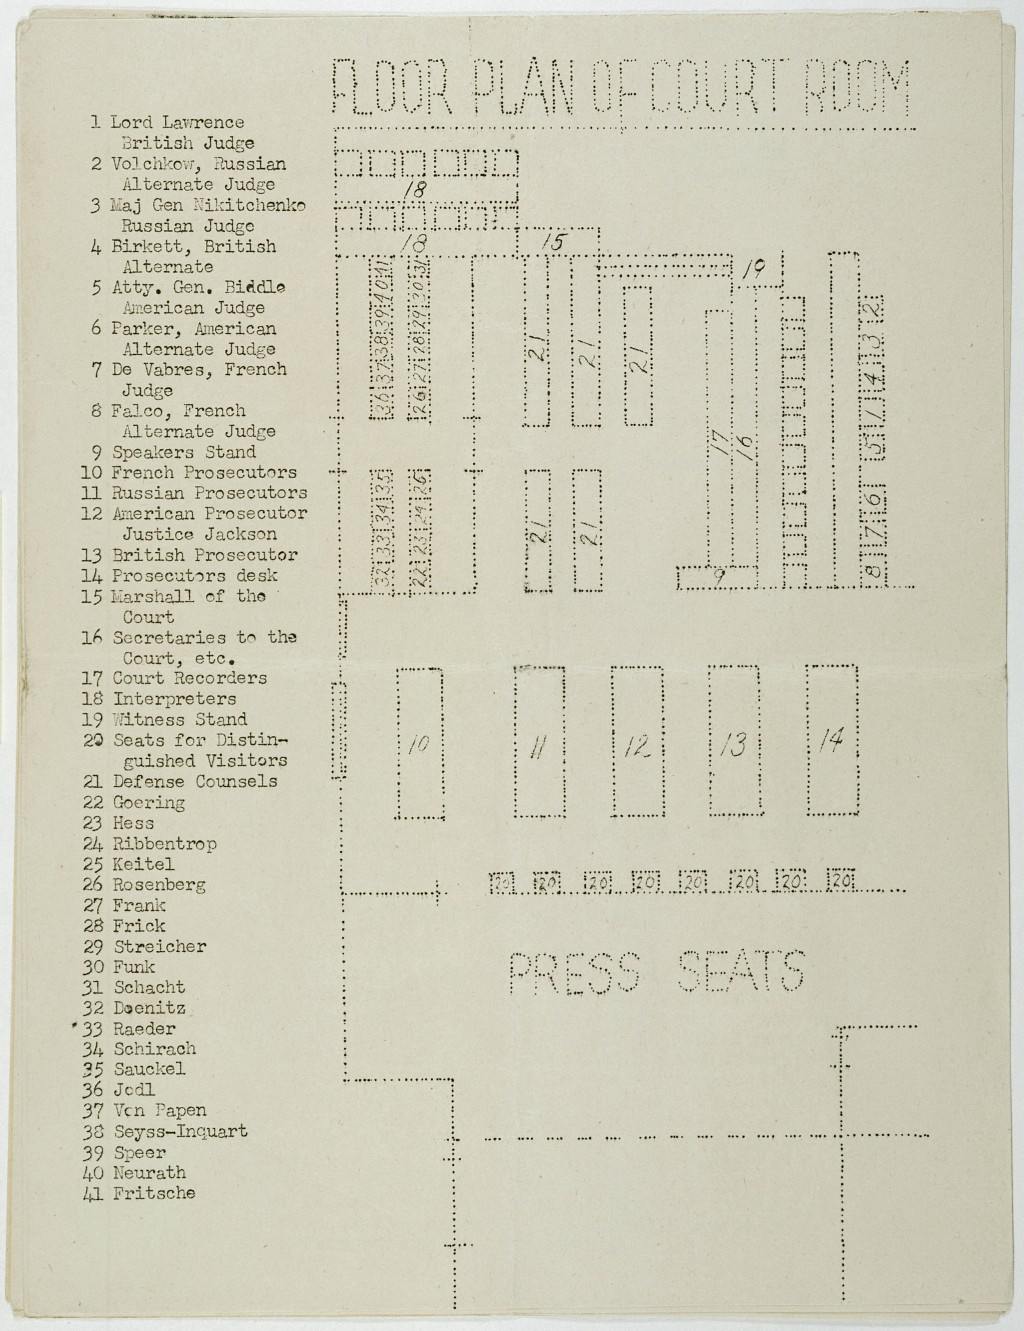 <p>Floor plan of the courtroom. The plan appeared in a mimeographed program booklet distributed at the International Military Tribunal at Nuremberg. 1945.</p>